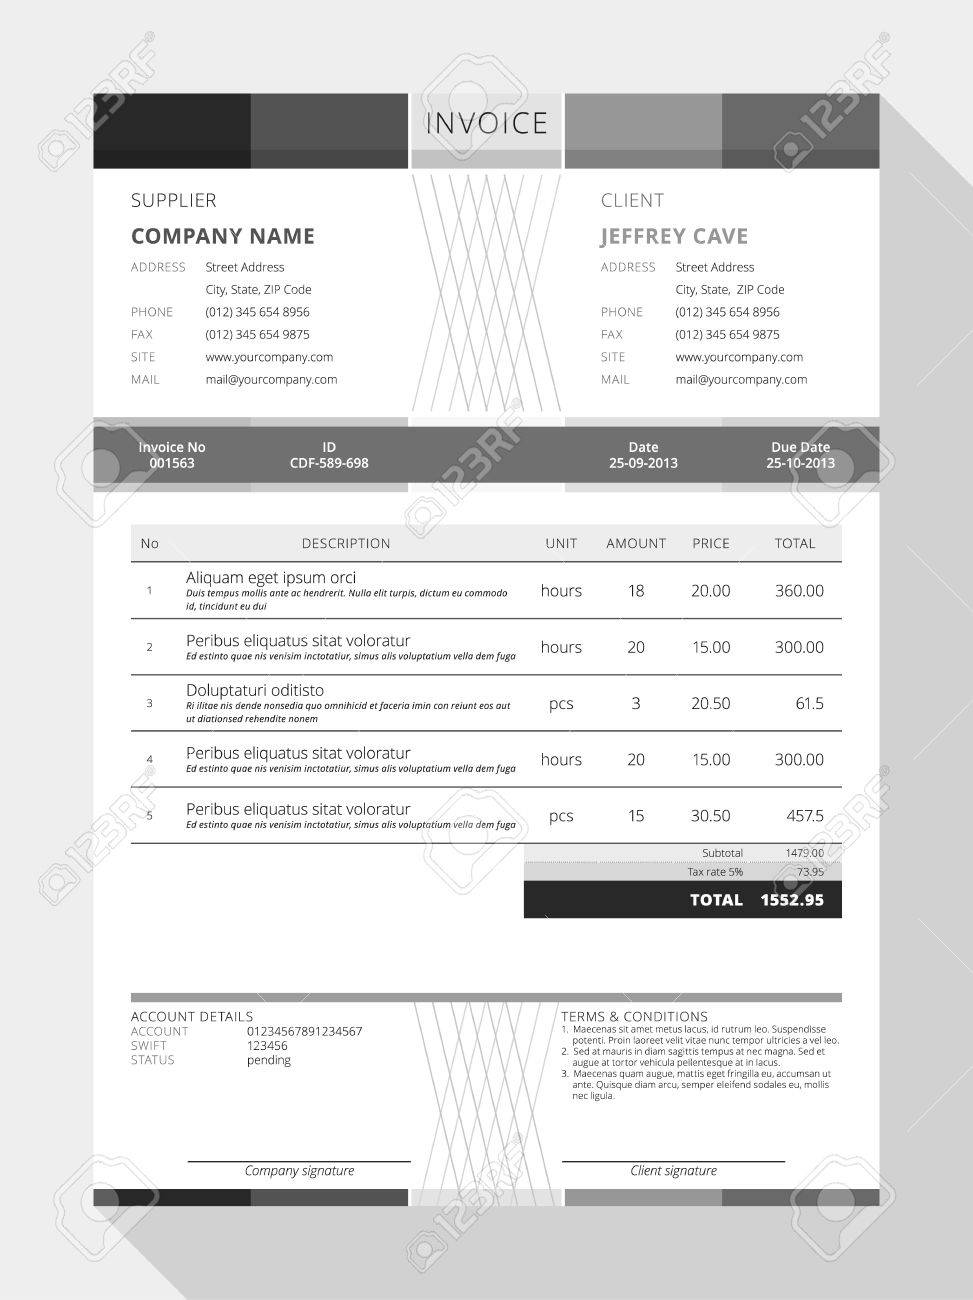 Reliefworkersus  Pretty Design An Invoice  Professional Graphic Design Invoice  With Excellent Vector Customizable Invoice Form Template Design Vector   Design An Invoice With Attractive Scanner For Receipts Also Big Lots Return Policy Without Receipt In Addition Fuel Receipt And Best Buy Receipt Lookup As Well As Due On Receipt Additionally How To Make A Fake Receipt From Happytomco With Reliefworkersus  Excellent Design An Invoice  Professional Graphic Design Invoice  With Attractive Vector Customizable Invoice Form Template Design Vector   Design An Invoice And Pretty Scanner For Receipts Also Big Lots Return Policy Without Receipt In Addition Fuel Receipt From Happytomco